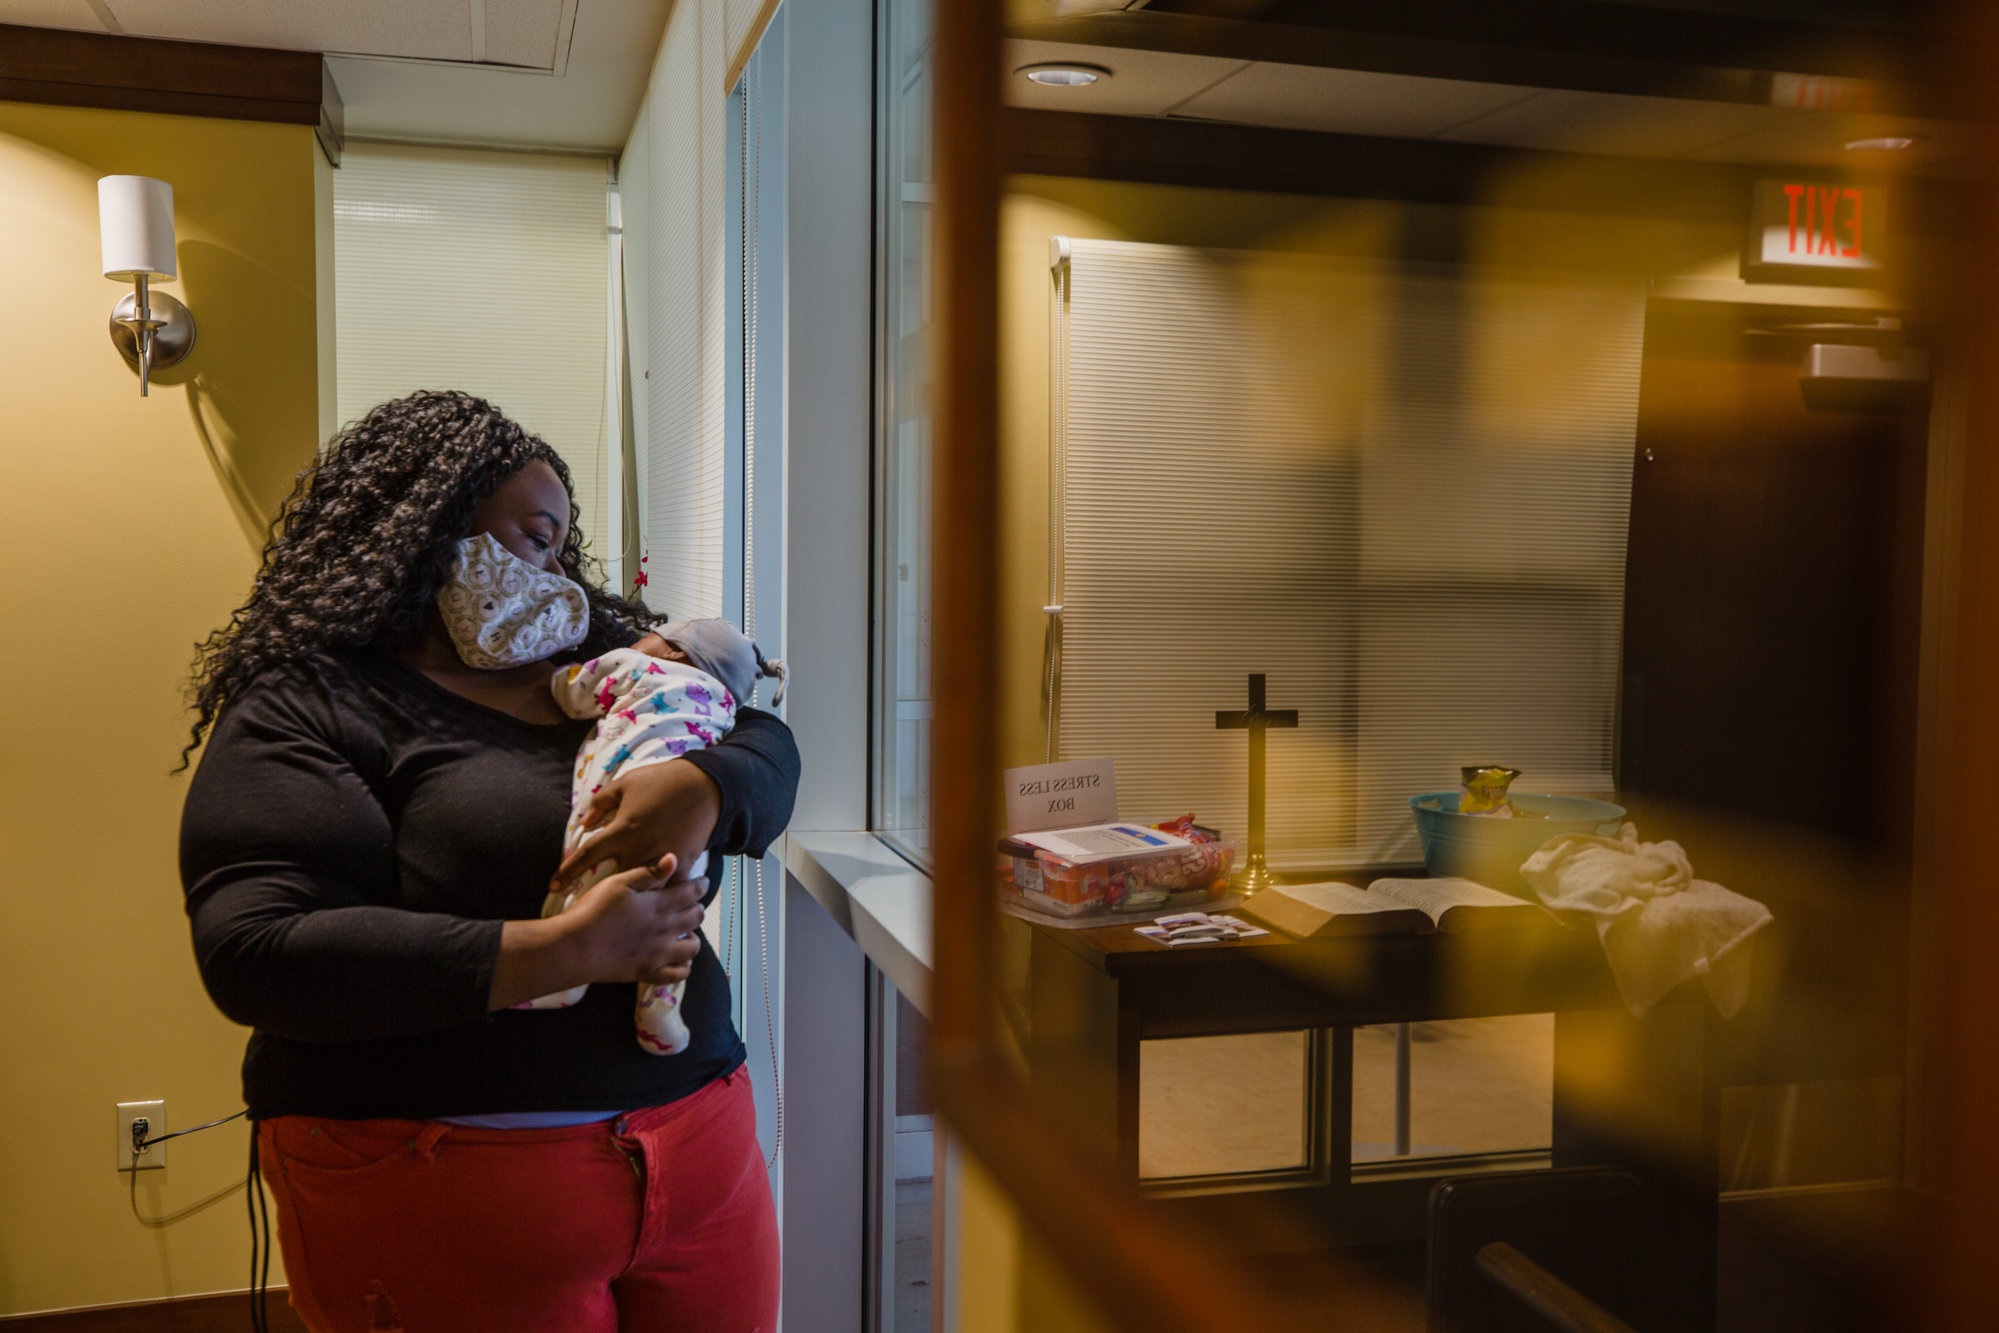 Shaquilla James holds her newborn daughter, Aubree. James survived COVID-19 while pregnant and giving birth to Aubree.